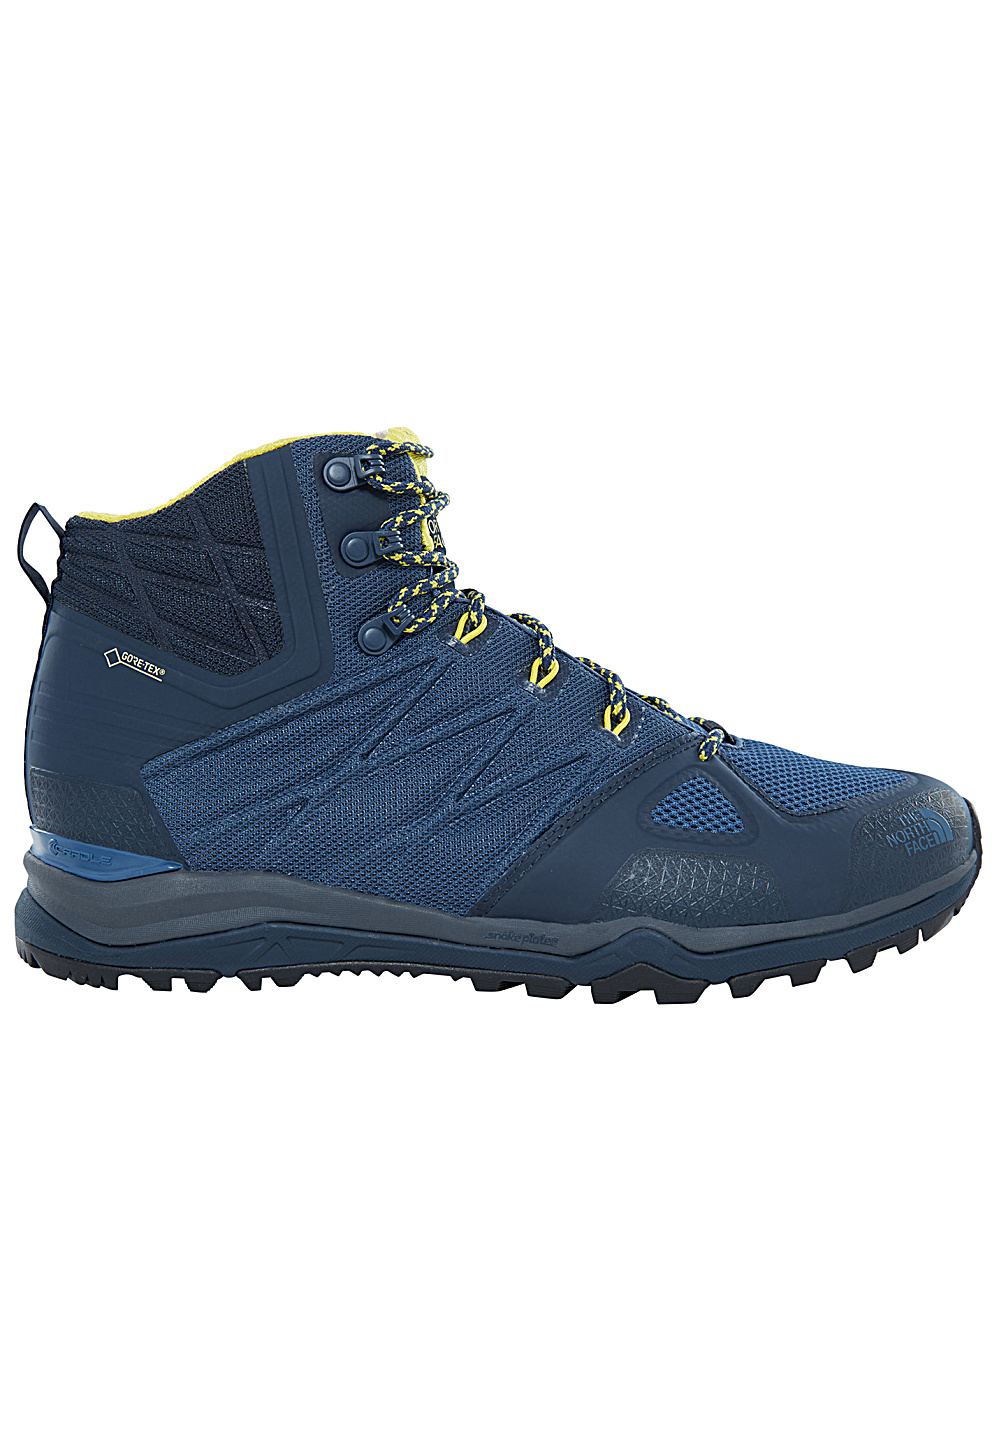 huge discount 49cc0 ebd24 THE NORTH FACE Ultra Fastpack II Mid GTX - Hiking Shoes for Men - Blue